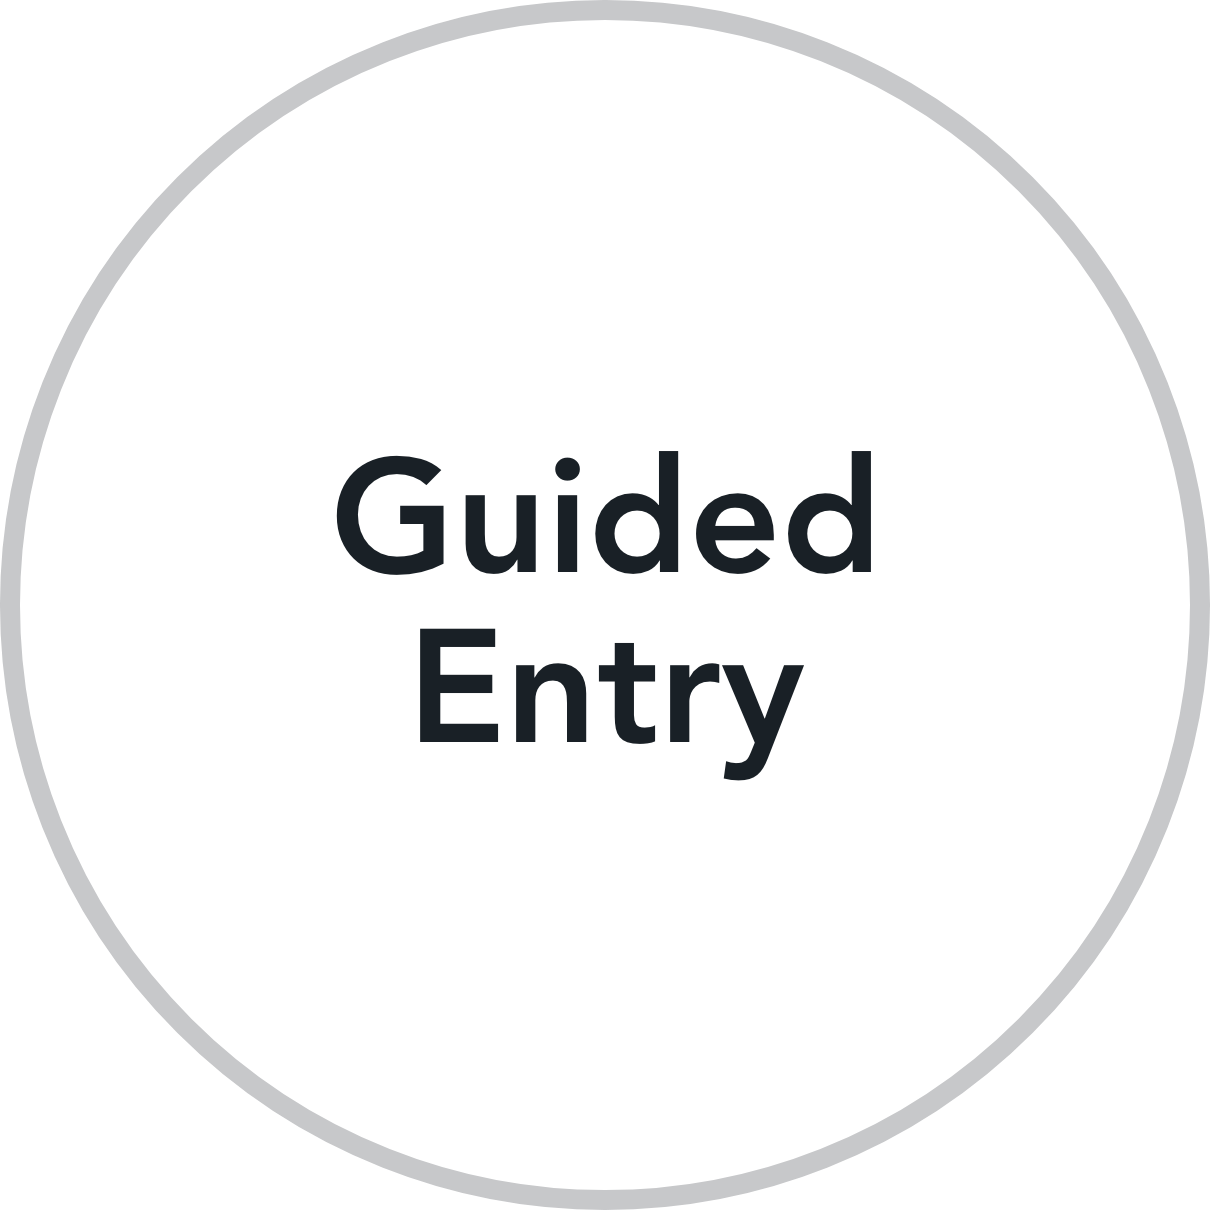 Guided Entry